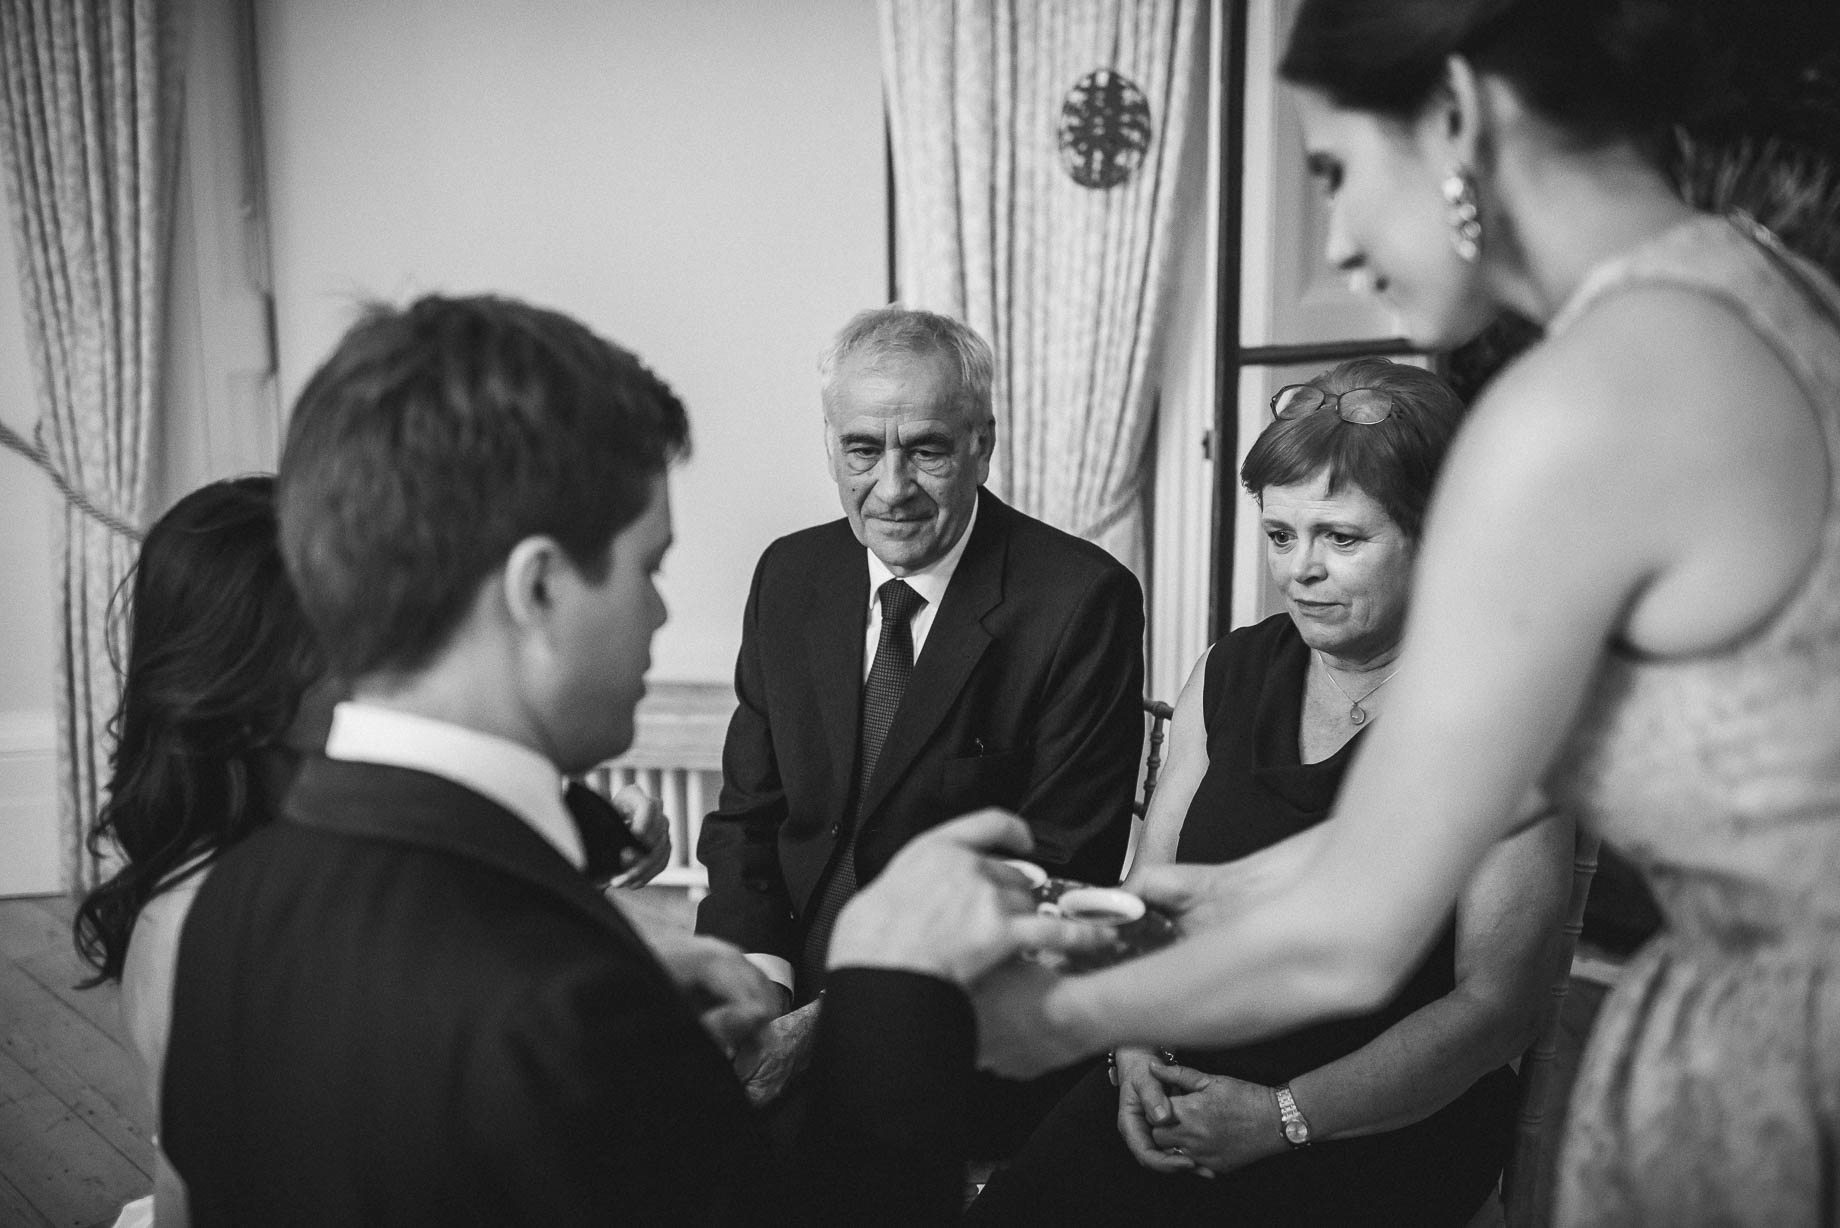 Kew Gardens wedding photography - Guy Collier Photography - Gloria and Frederik (160 of 173)